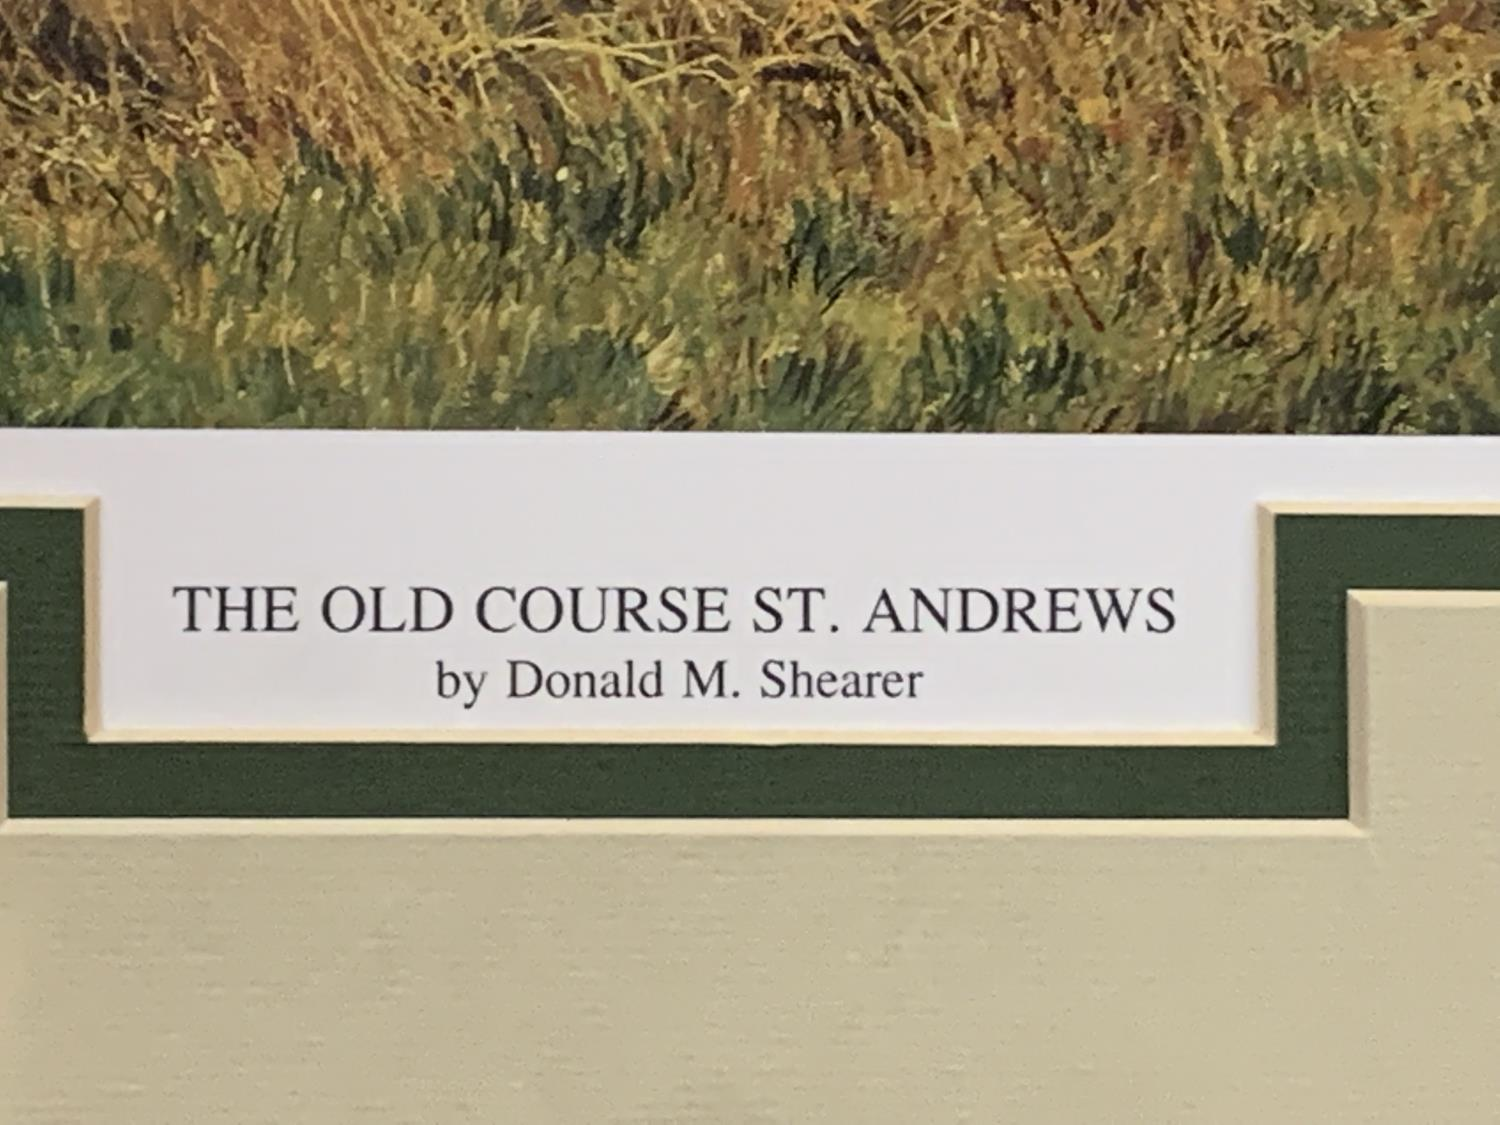 A MOUNTED PRINT OF THE OLD COURSE ST ANDREWS WITH AN INDISTINCT SIGNATURE - Image 4 of 6